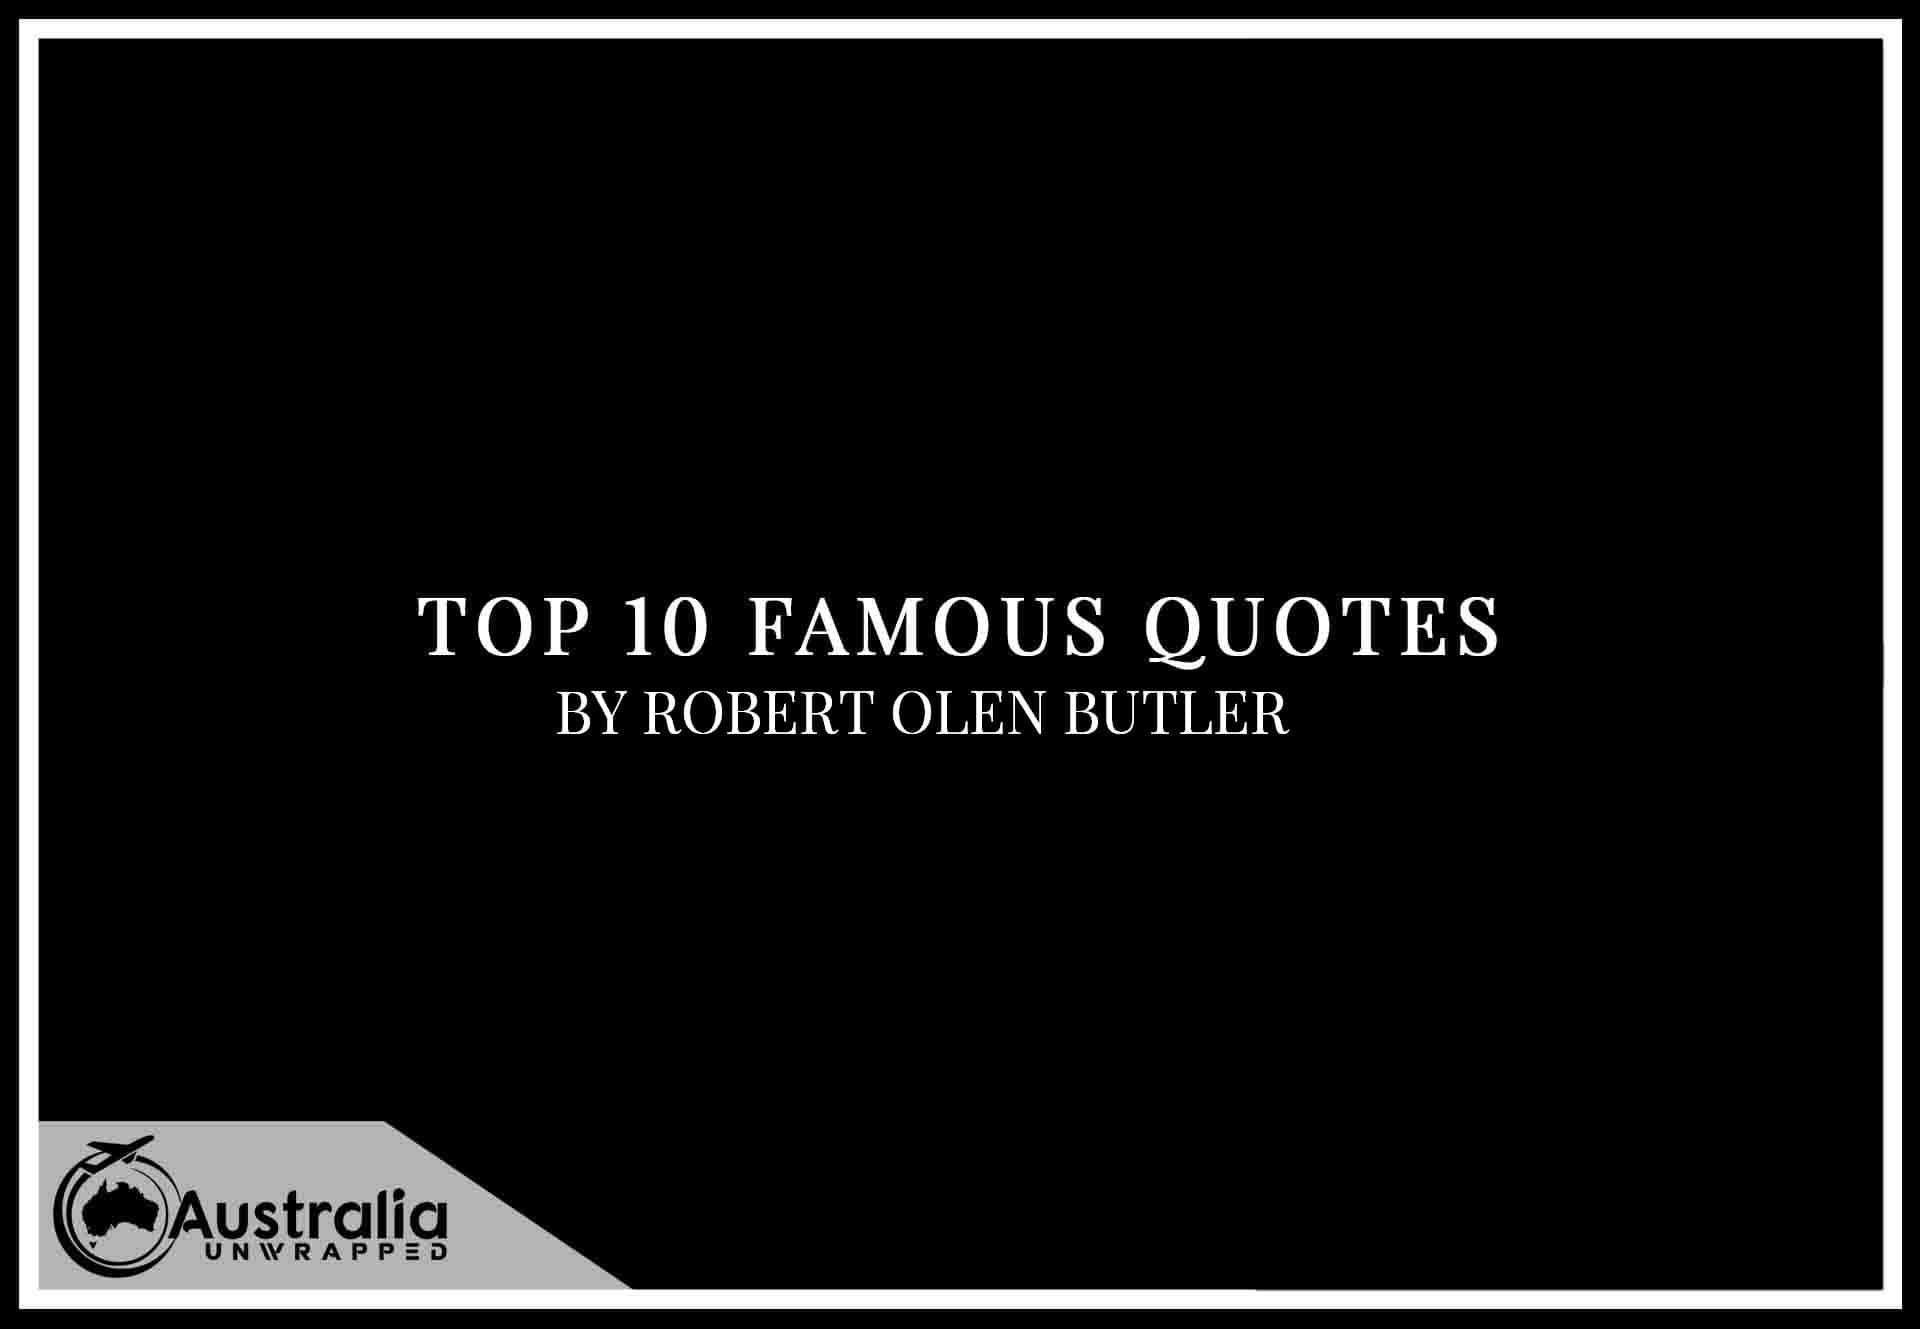 Top 10 Famous Quotes by Author Robert Olen Butler